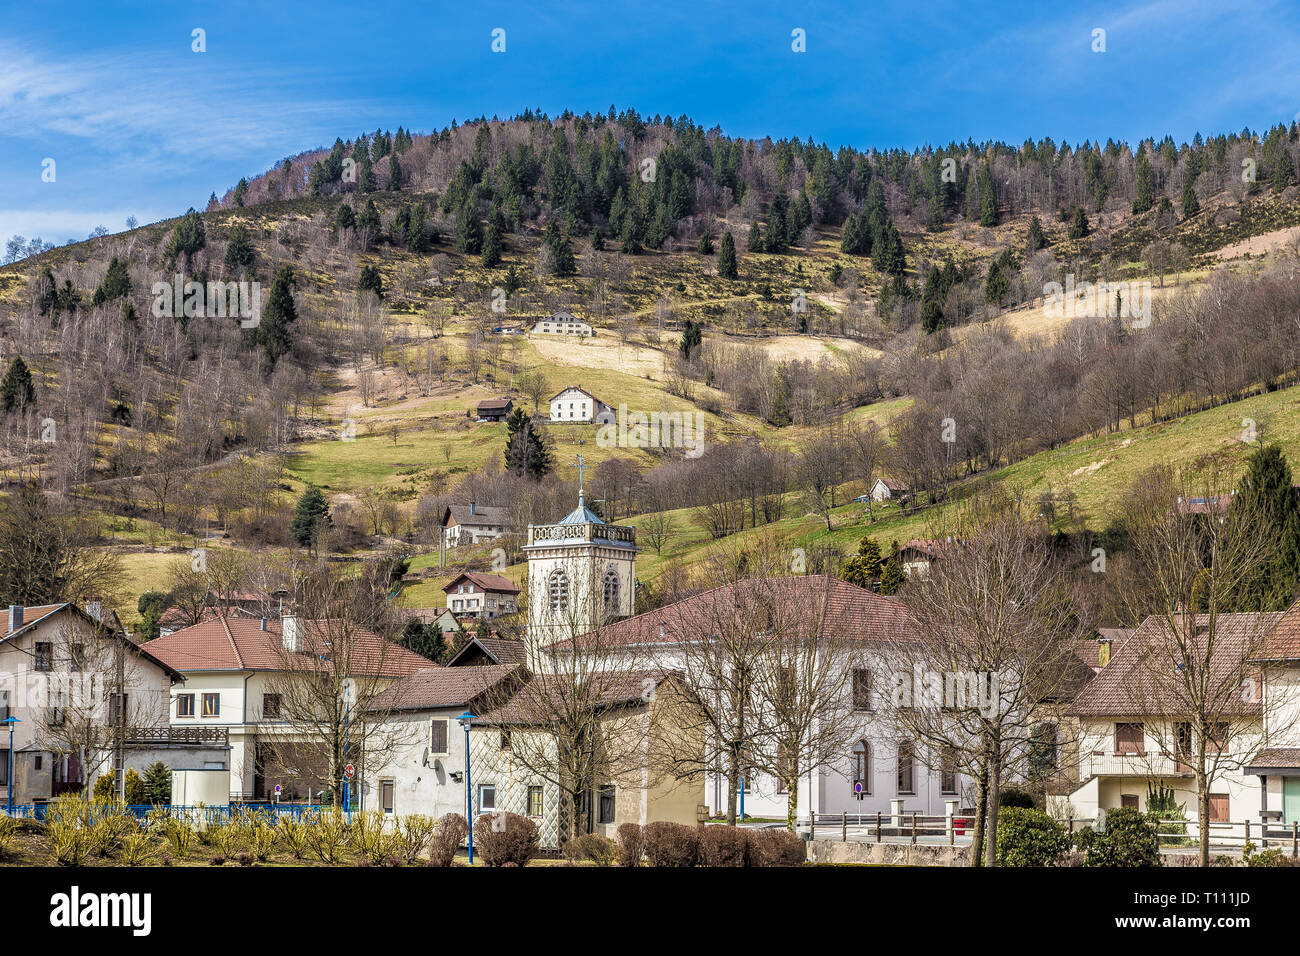 Bussang Stock Photos Bussang Stock Images Alamy